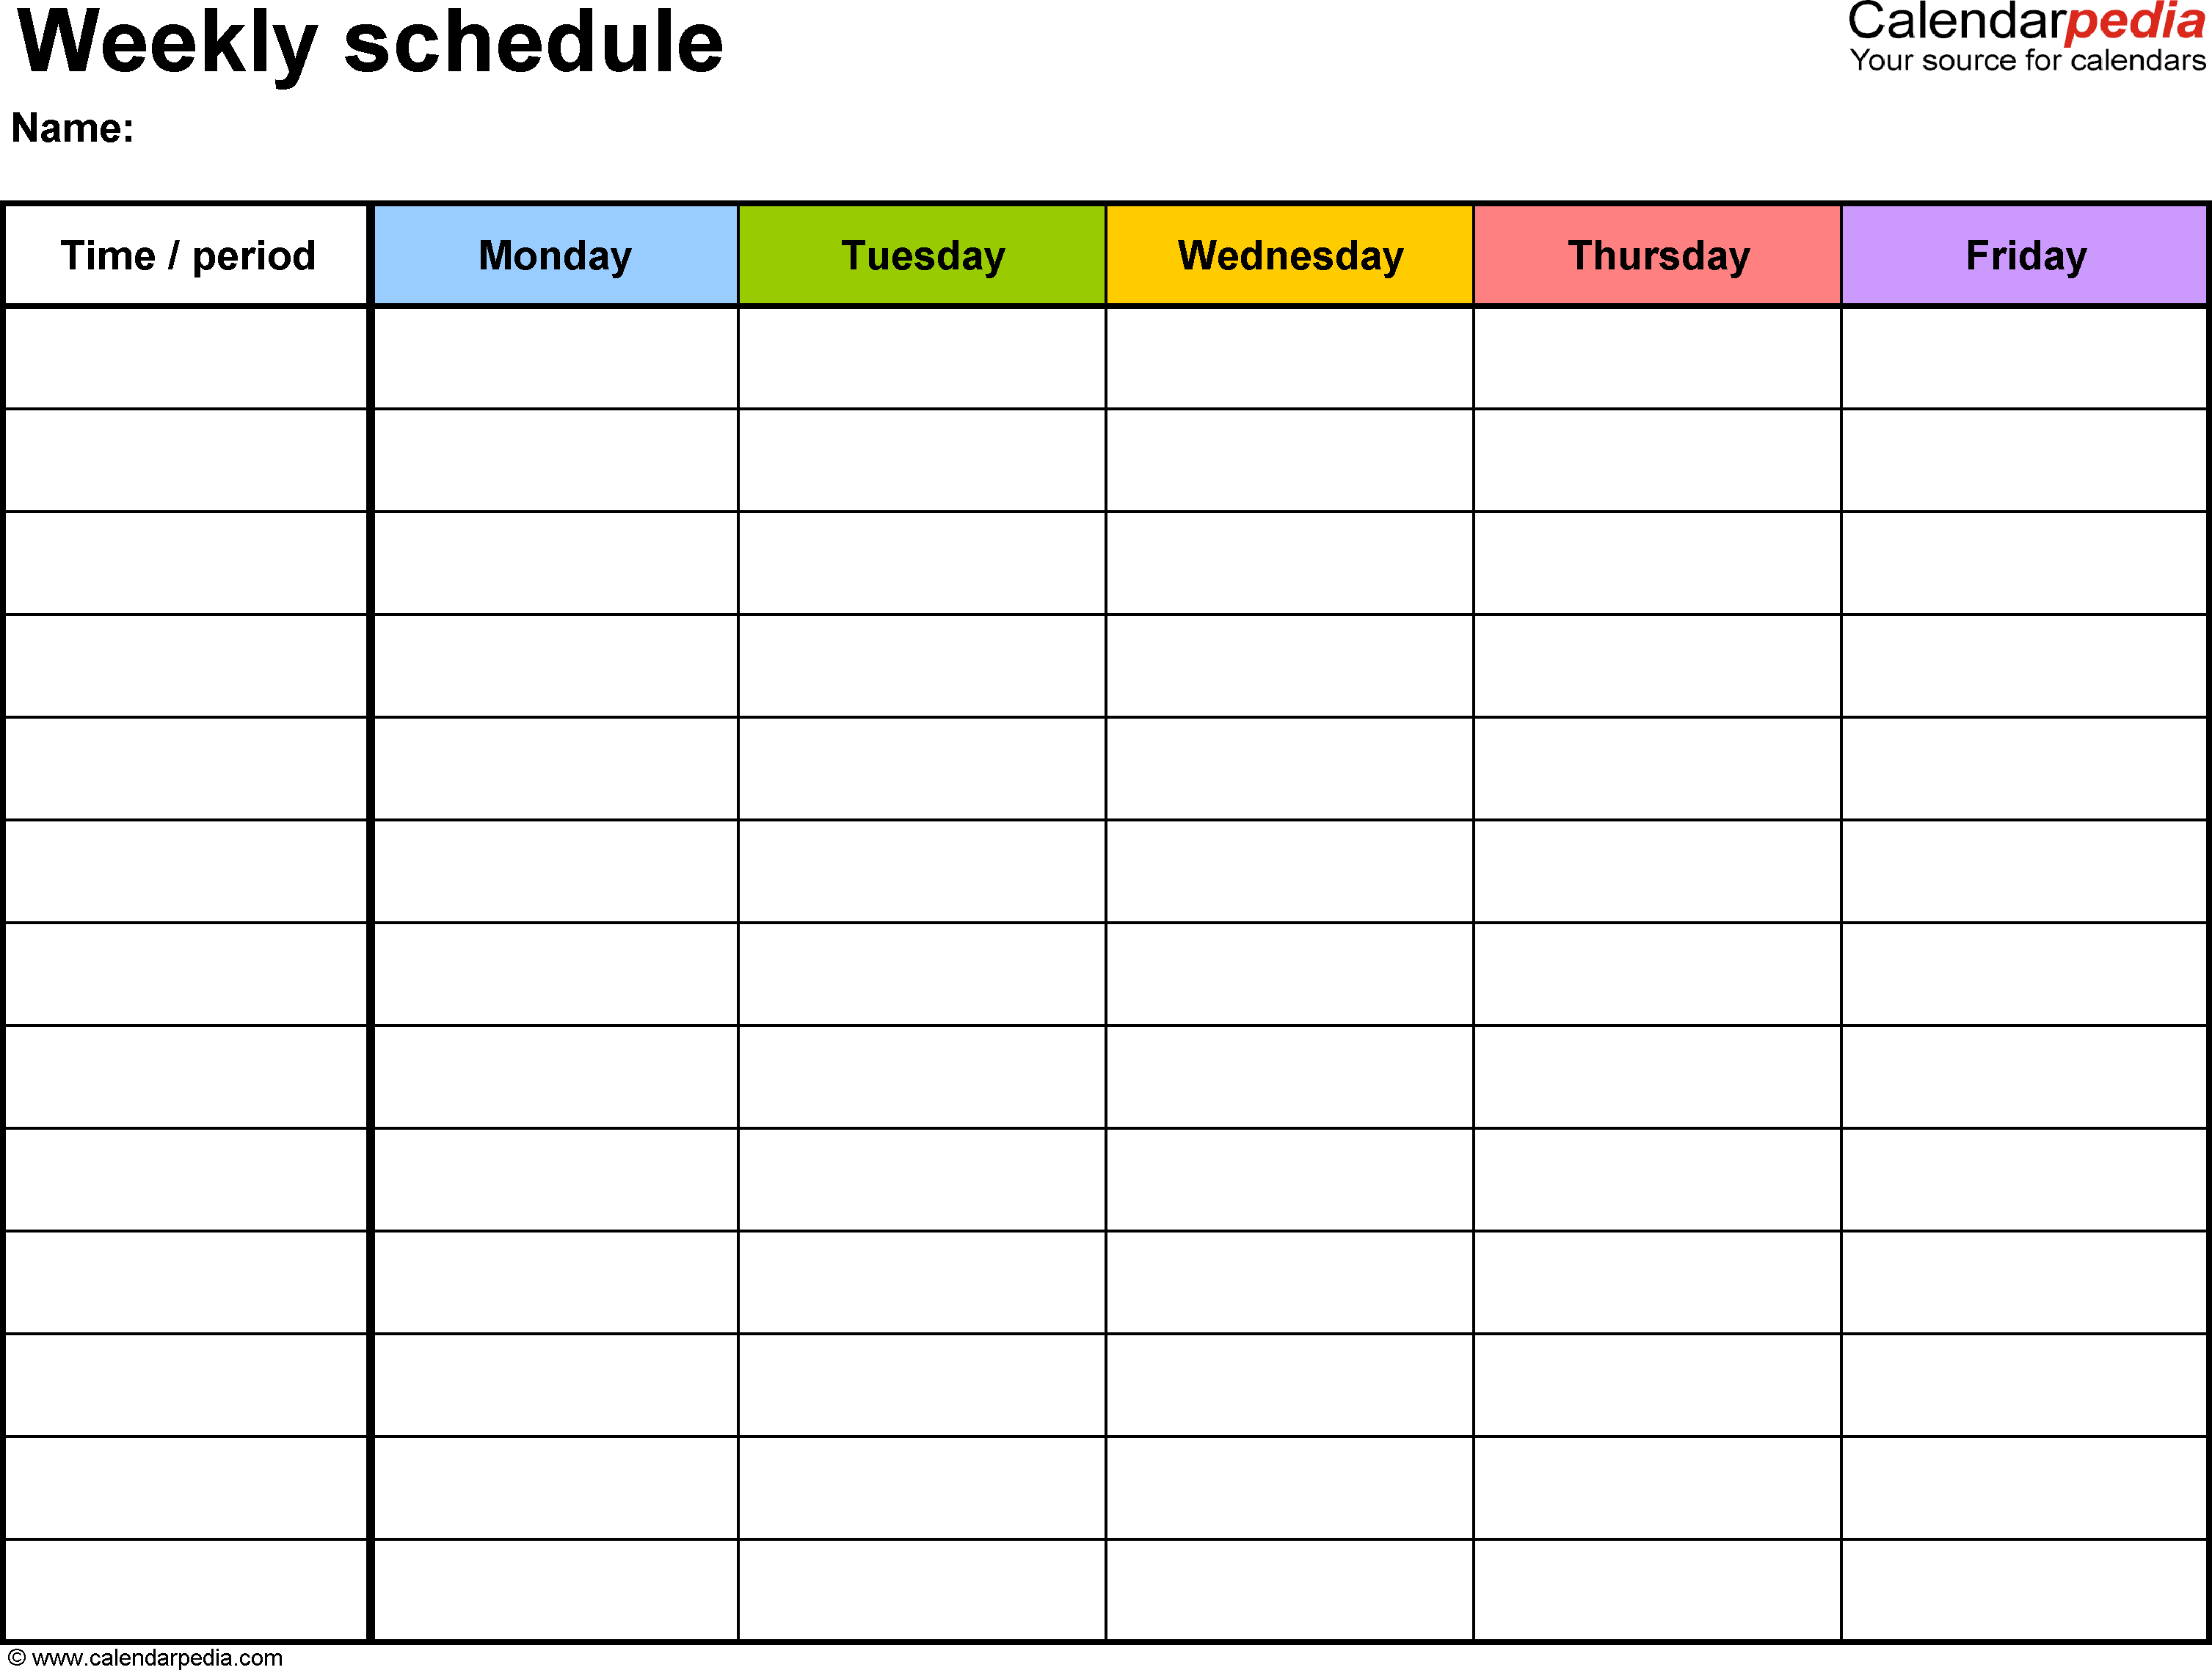 Weekly Schedule Template For Word Version 1: Landscape, 1 for Monday Through Friday Calendar Template